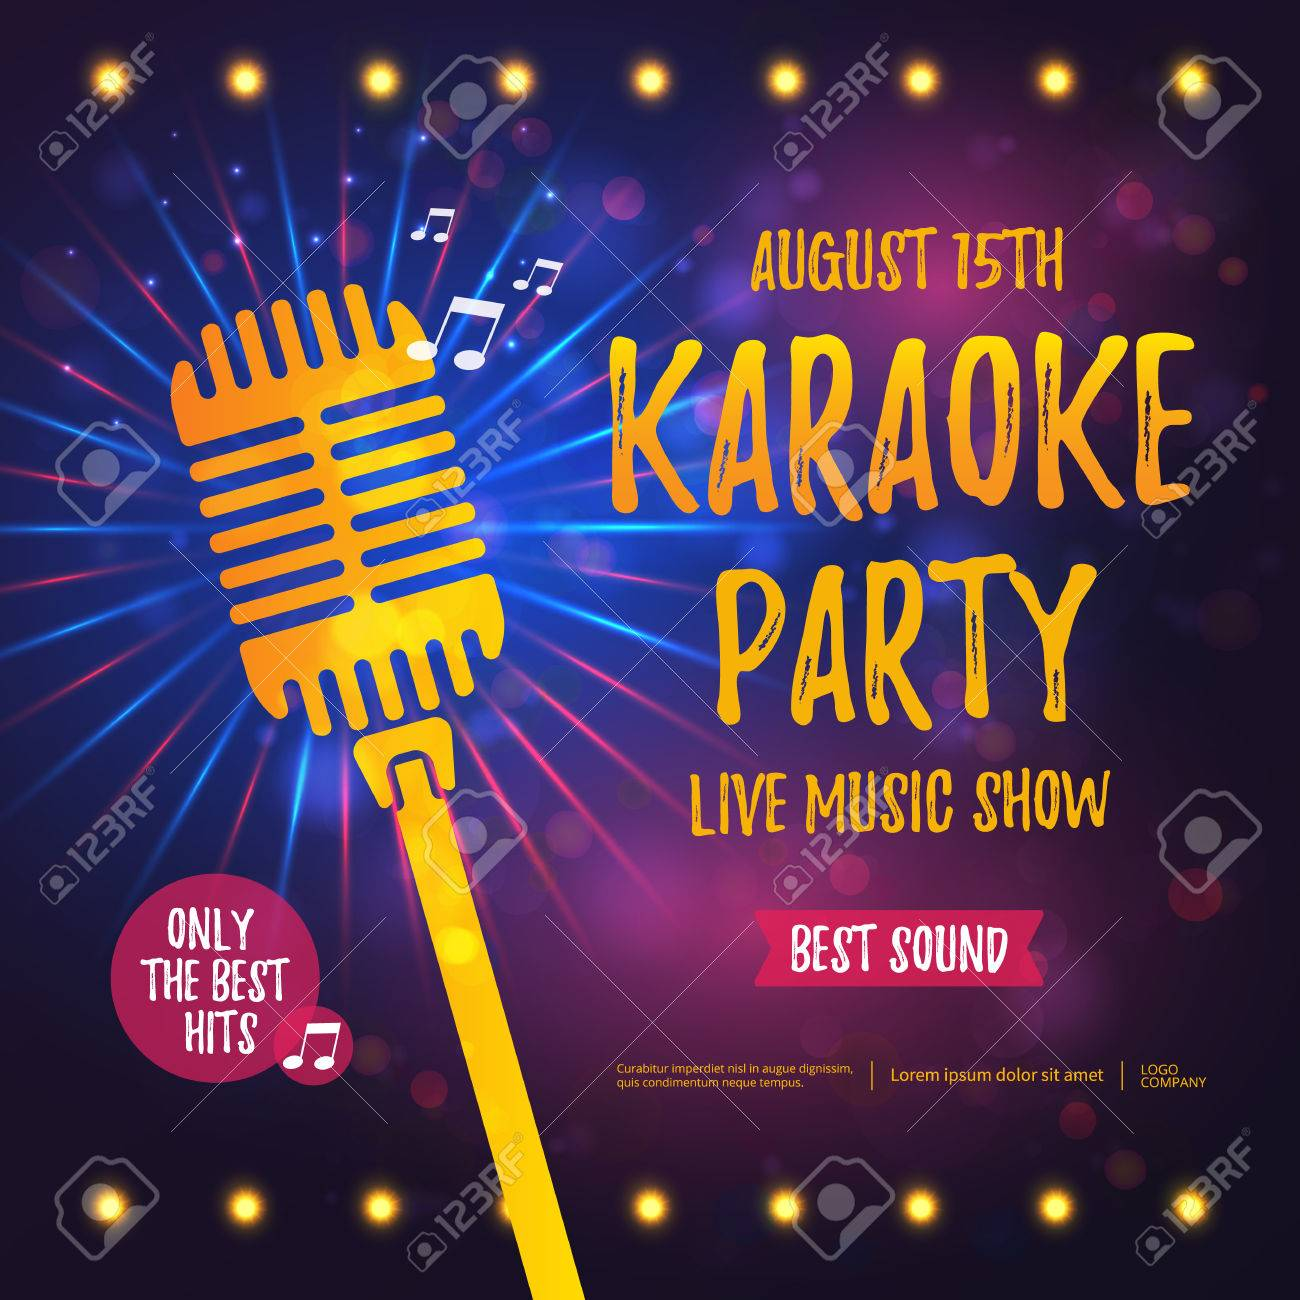 Karaoke party banner with microphone. - 59650849